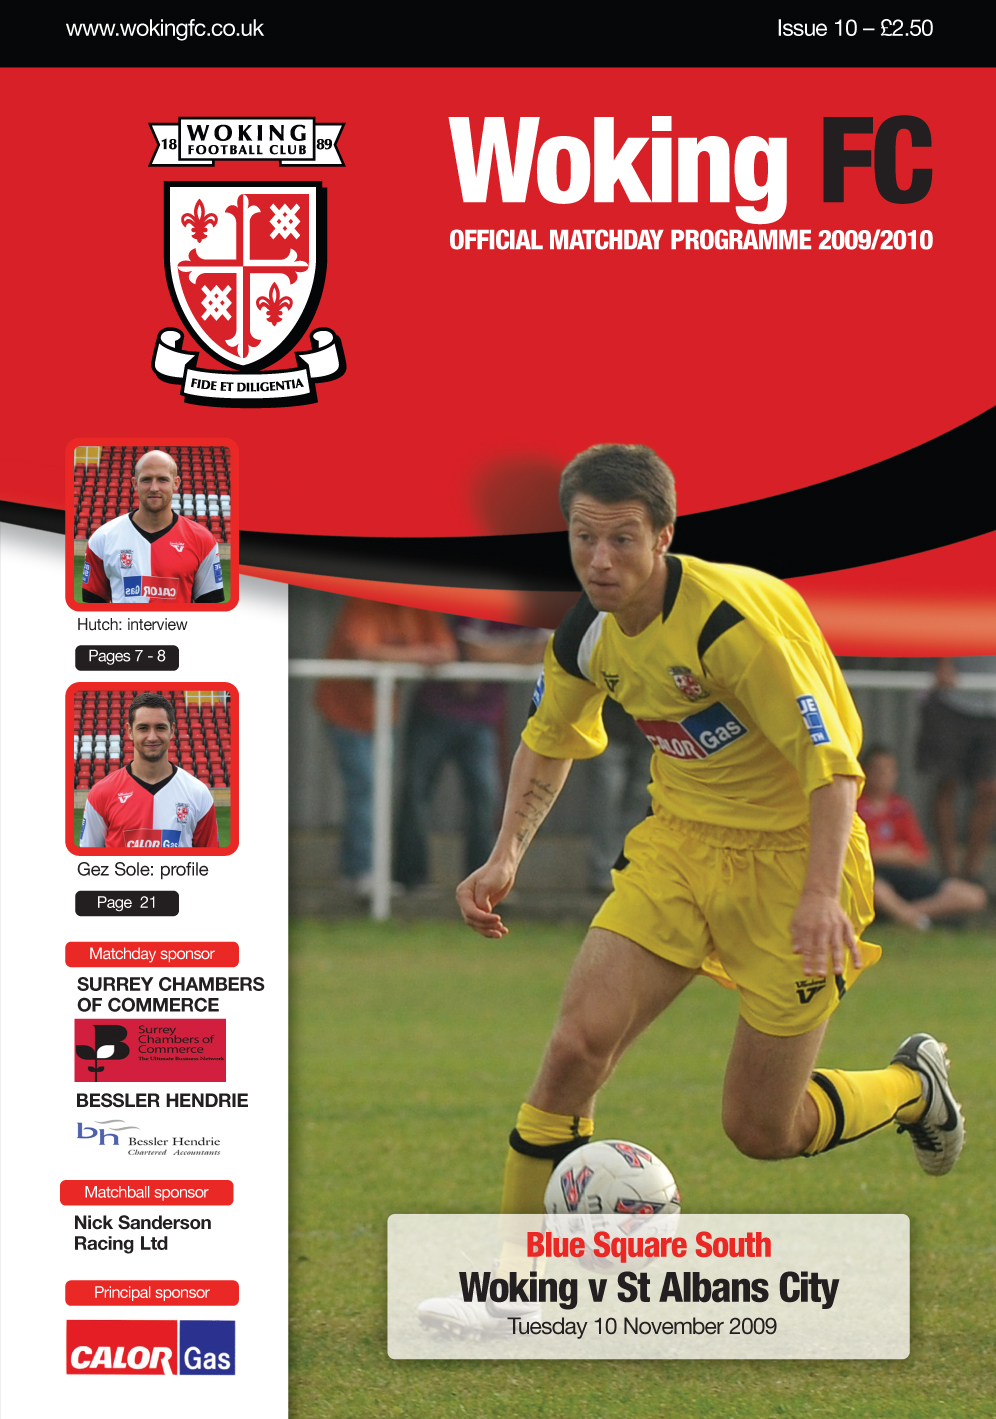 Tuesday's matchday programme